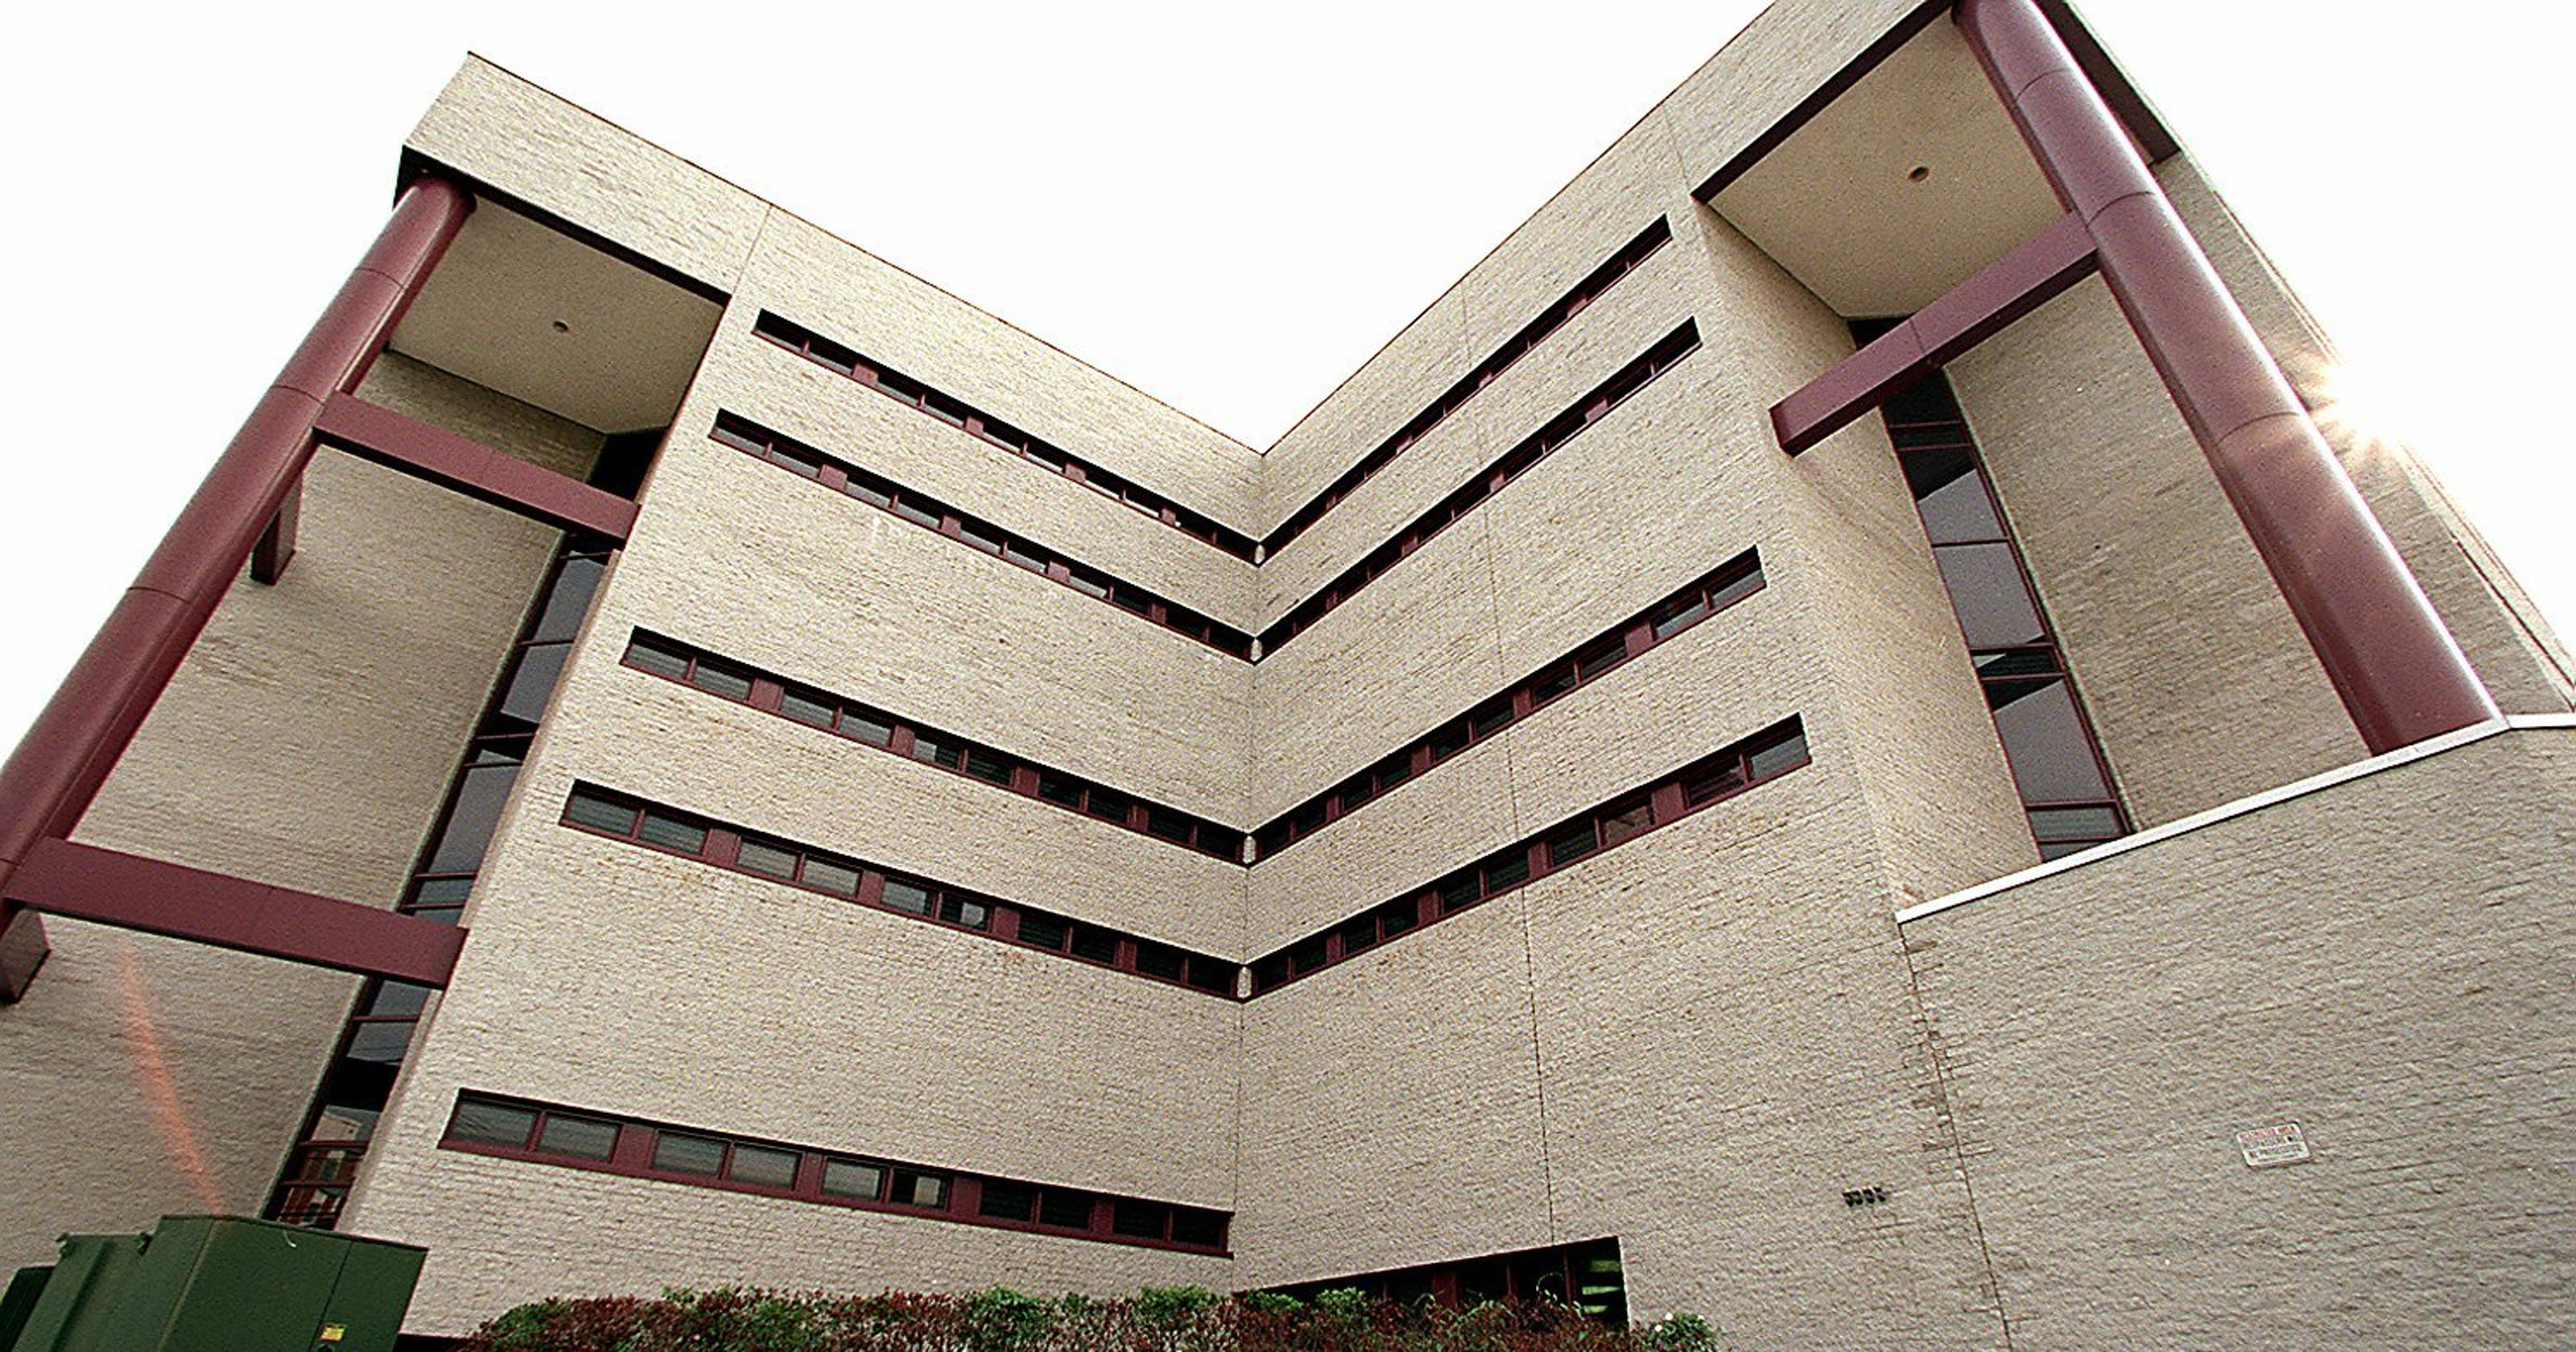 Lawsuit Dismissed In Suicide Case At Somerset County Jail